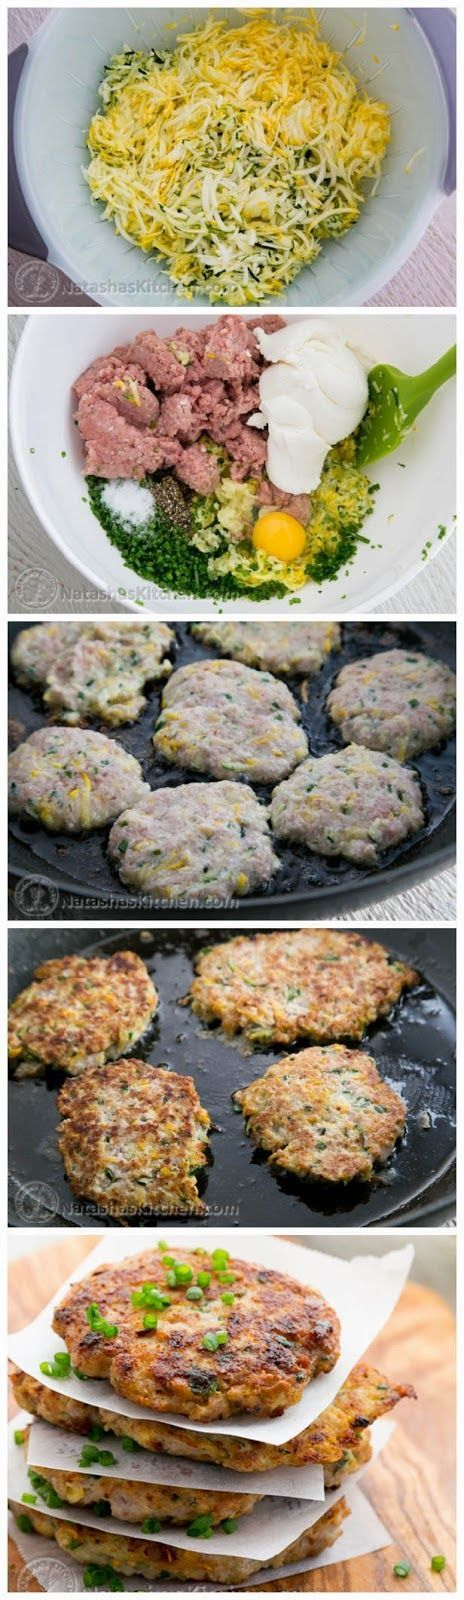 Chicken Zucchini Fritters, Delicious Recipe To Add To Your Next Dinner Party!